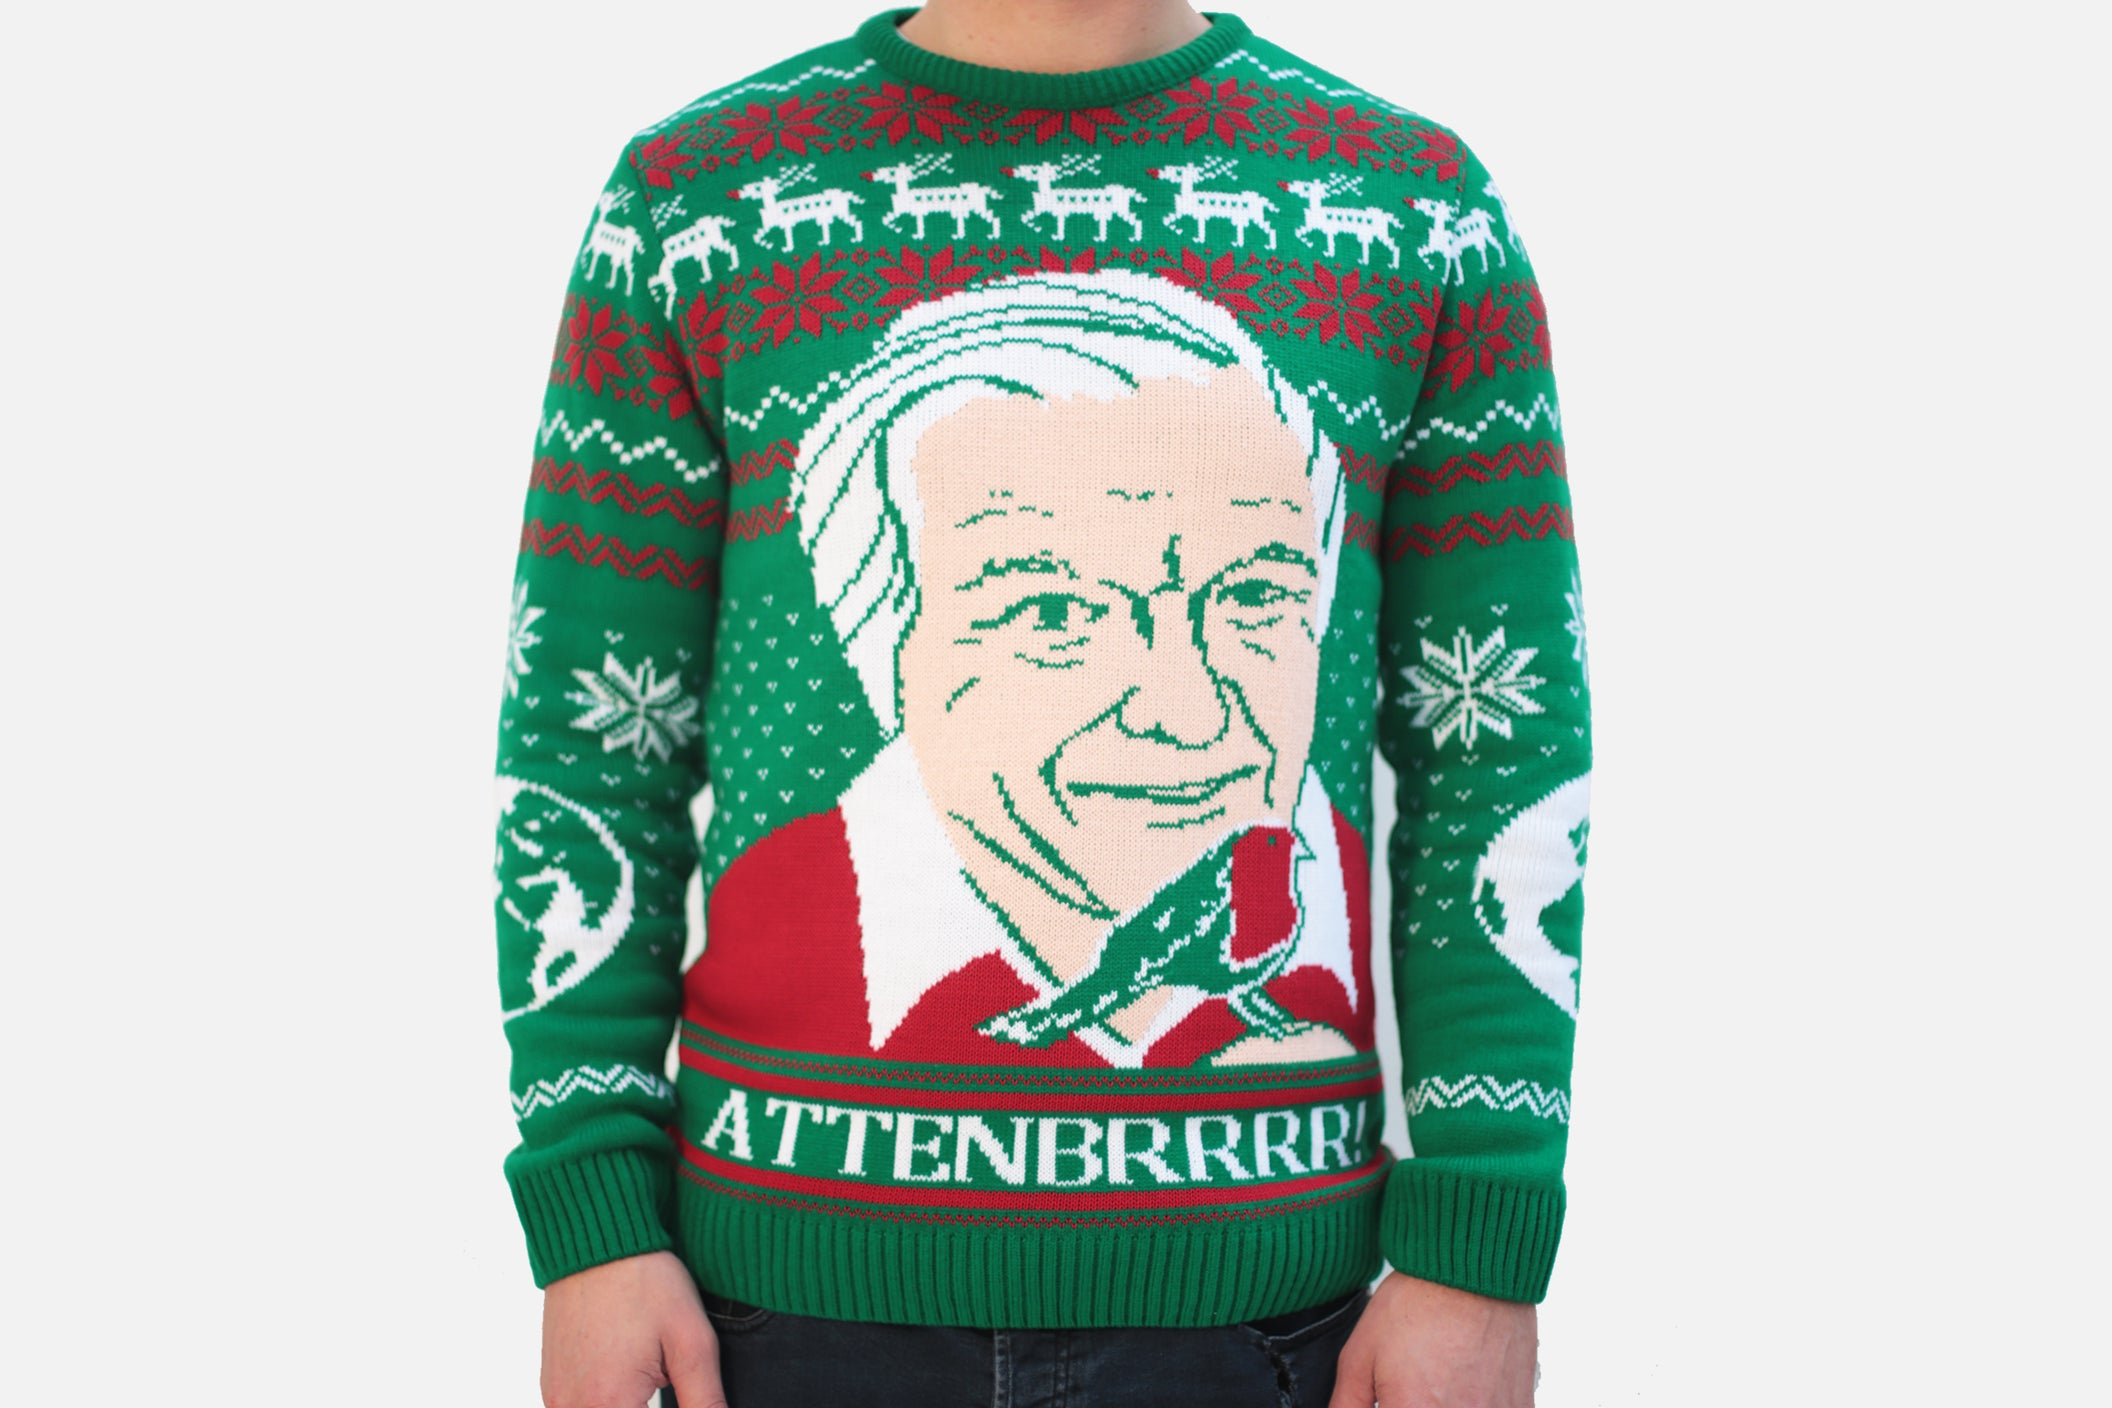 david atenborough christmas jumper